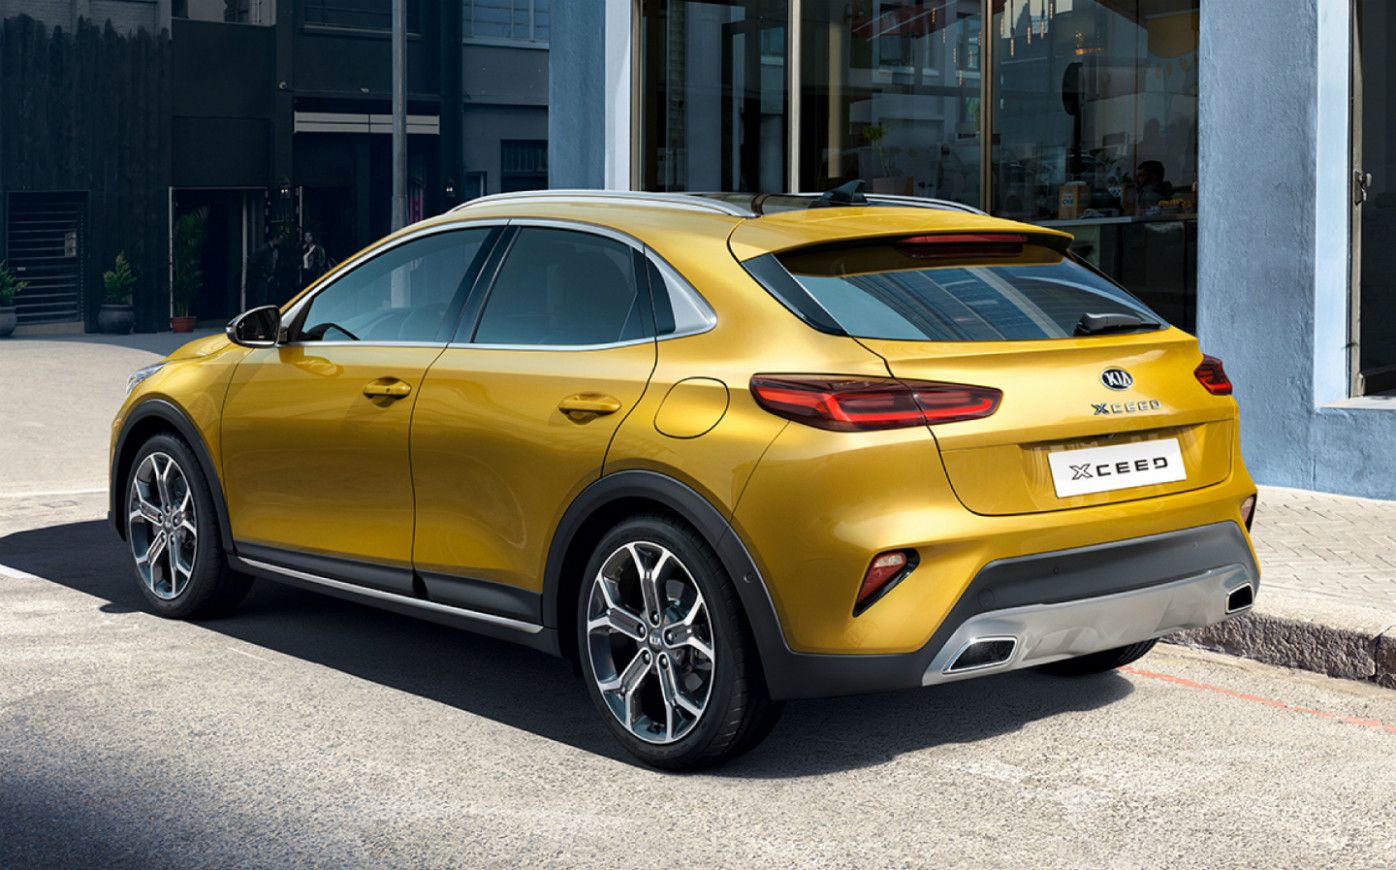 6 Kia XCeed: prices, performance, interior space and release date